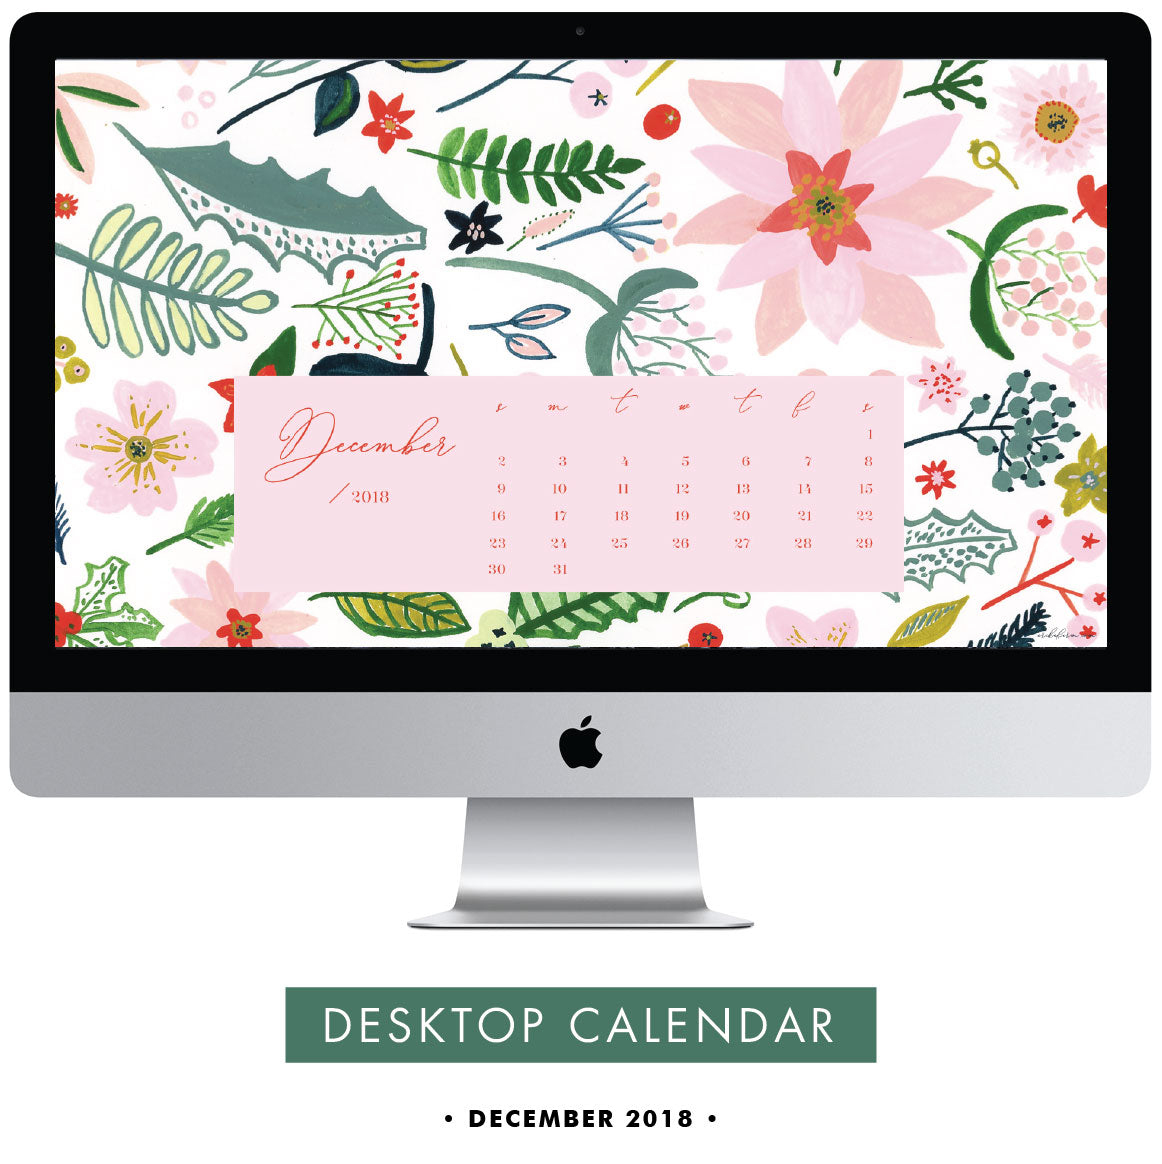 Download free December 2018 Desktop Calendar Wallpaper by Erika Firm